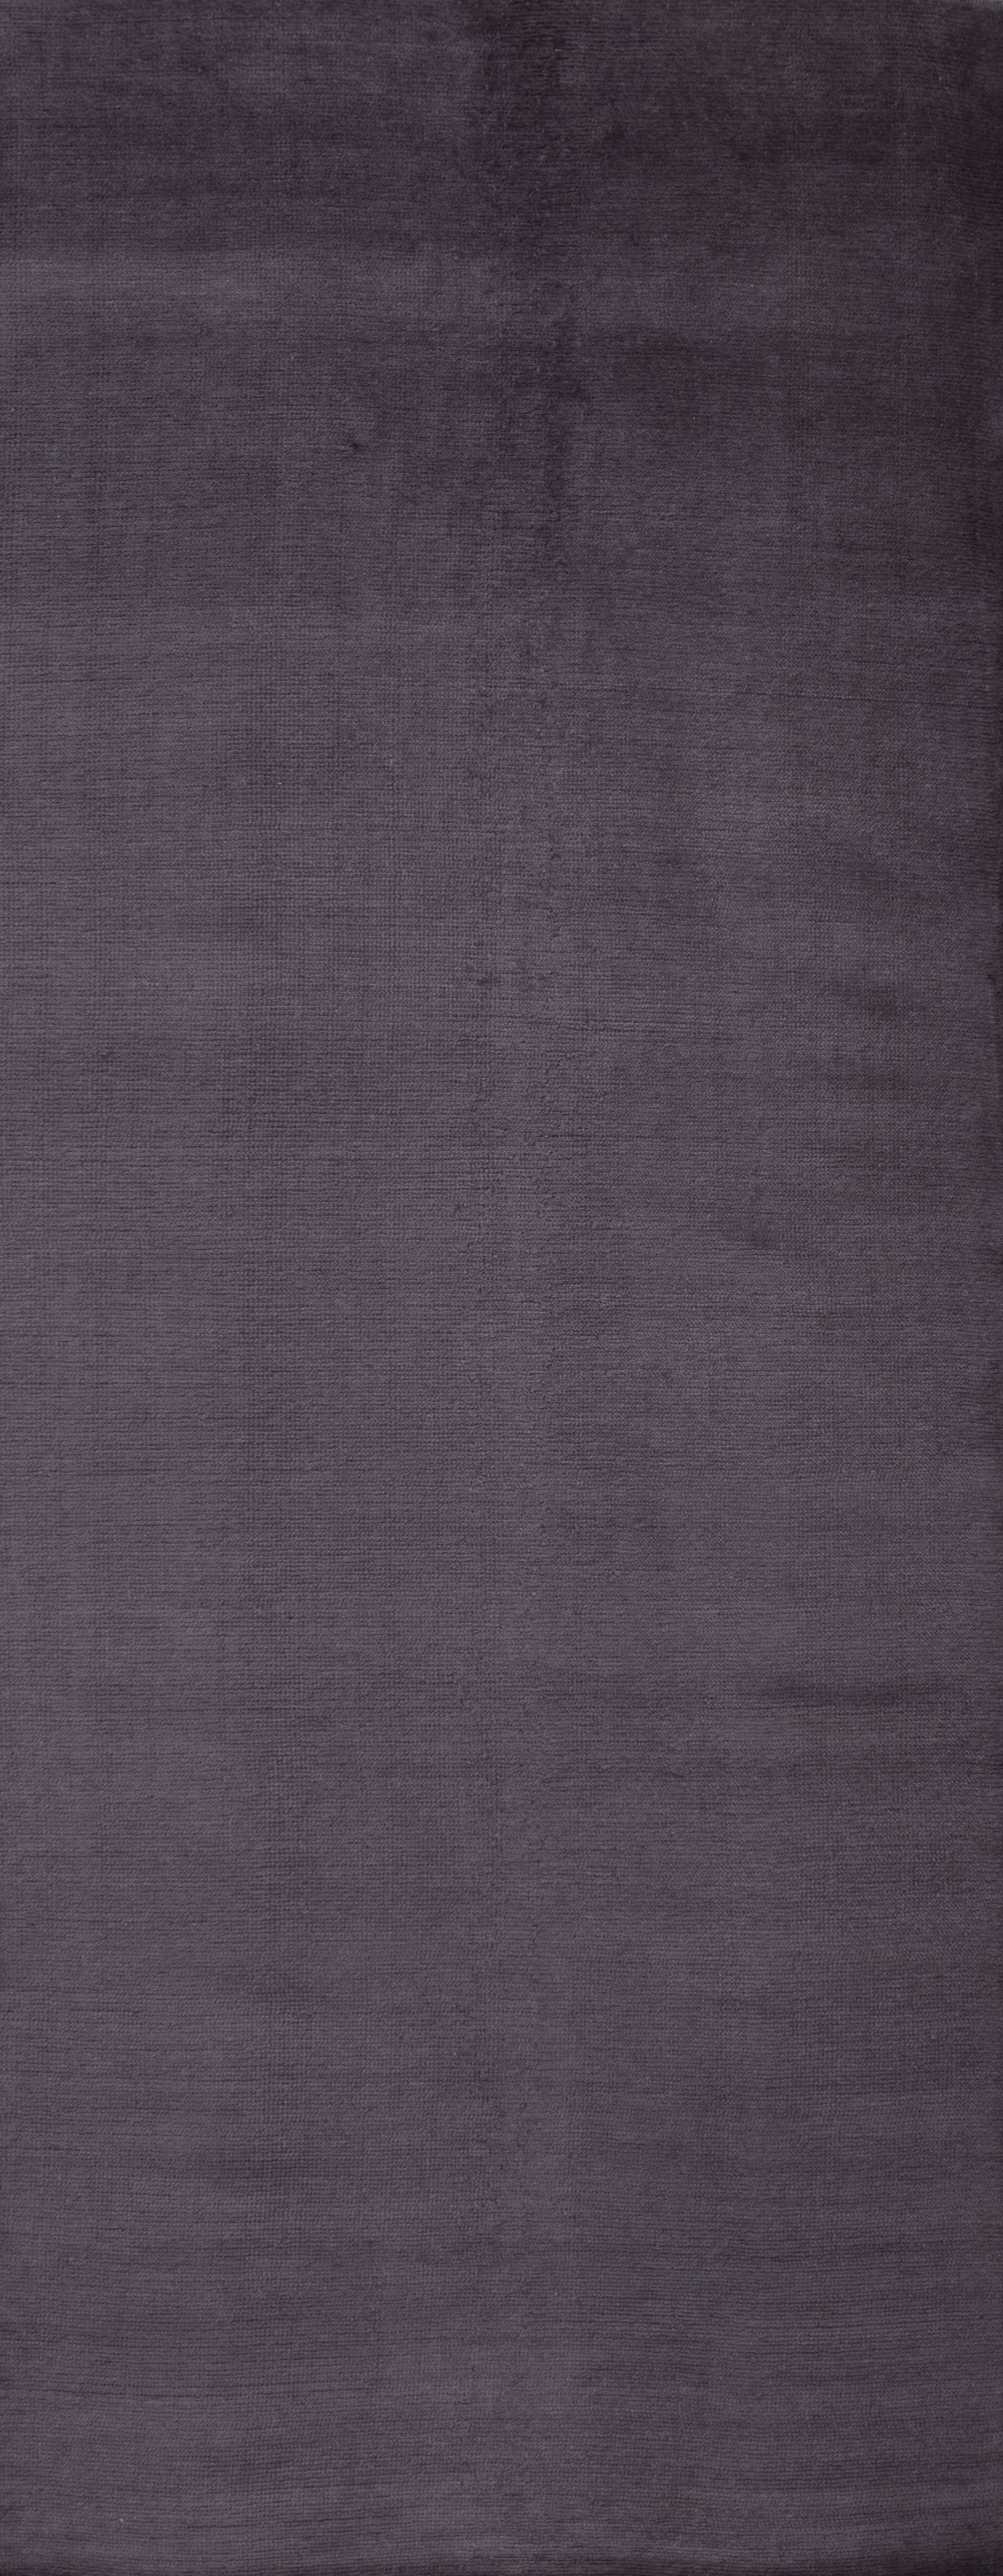 22531_SOLID_MOHAIR_T1.jpg